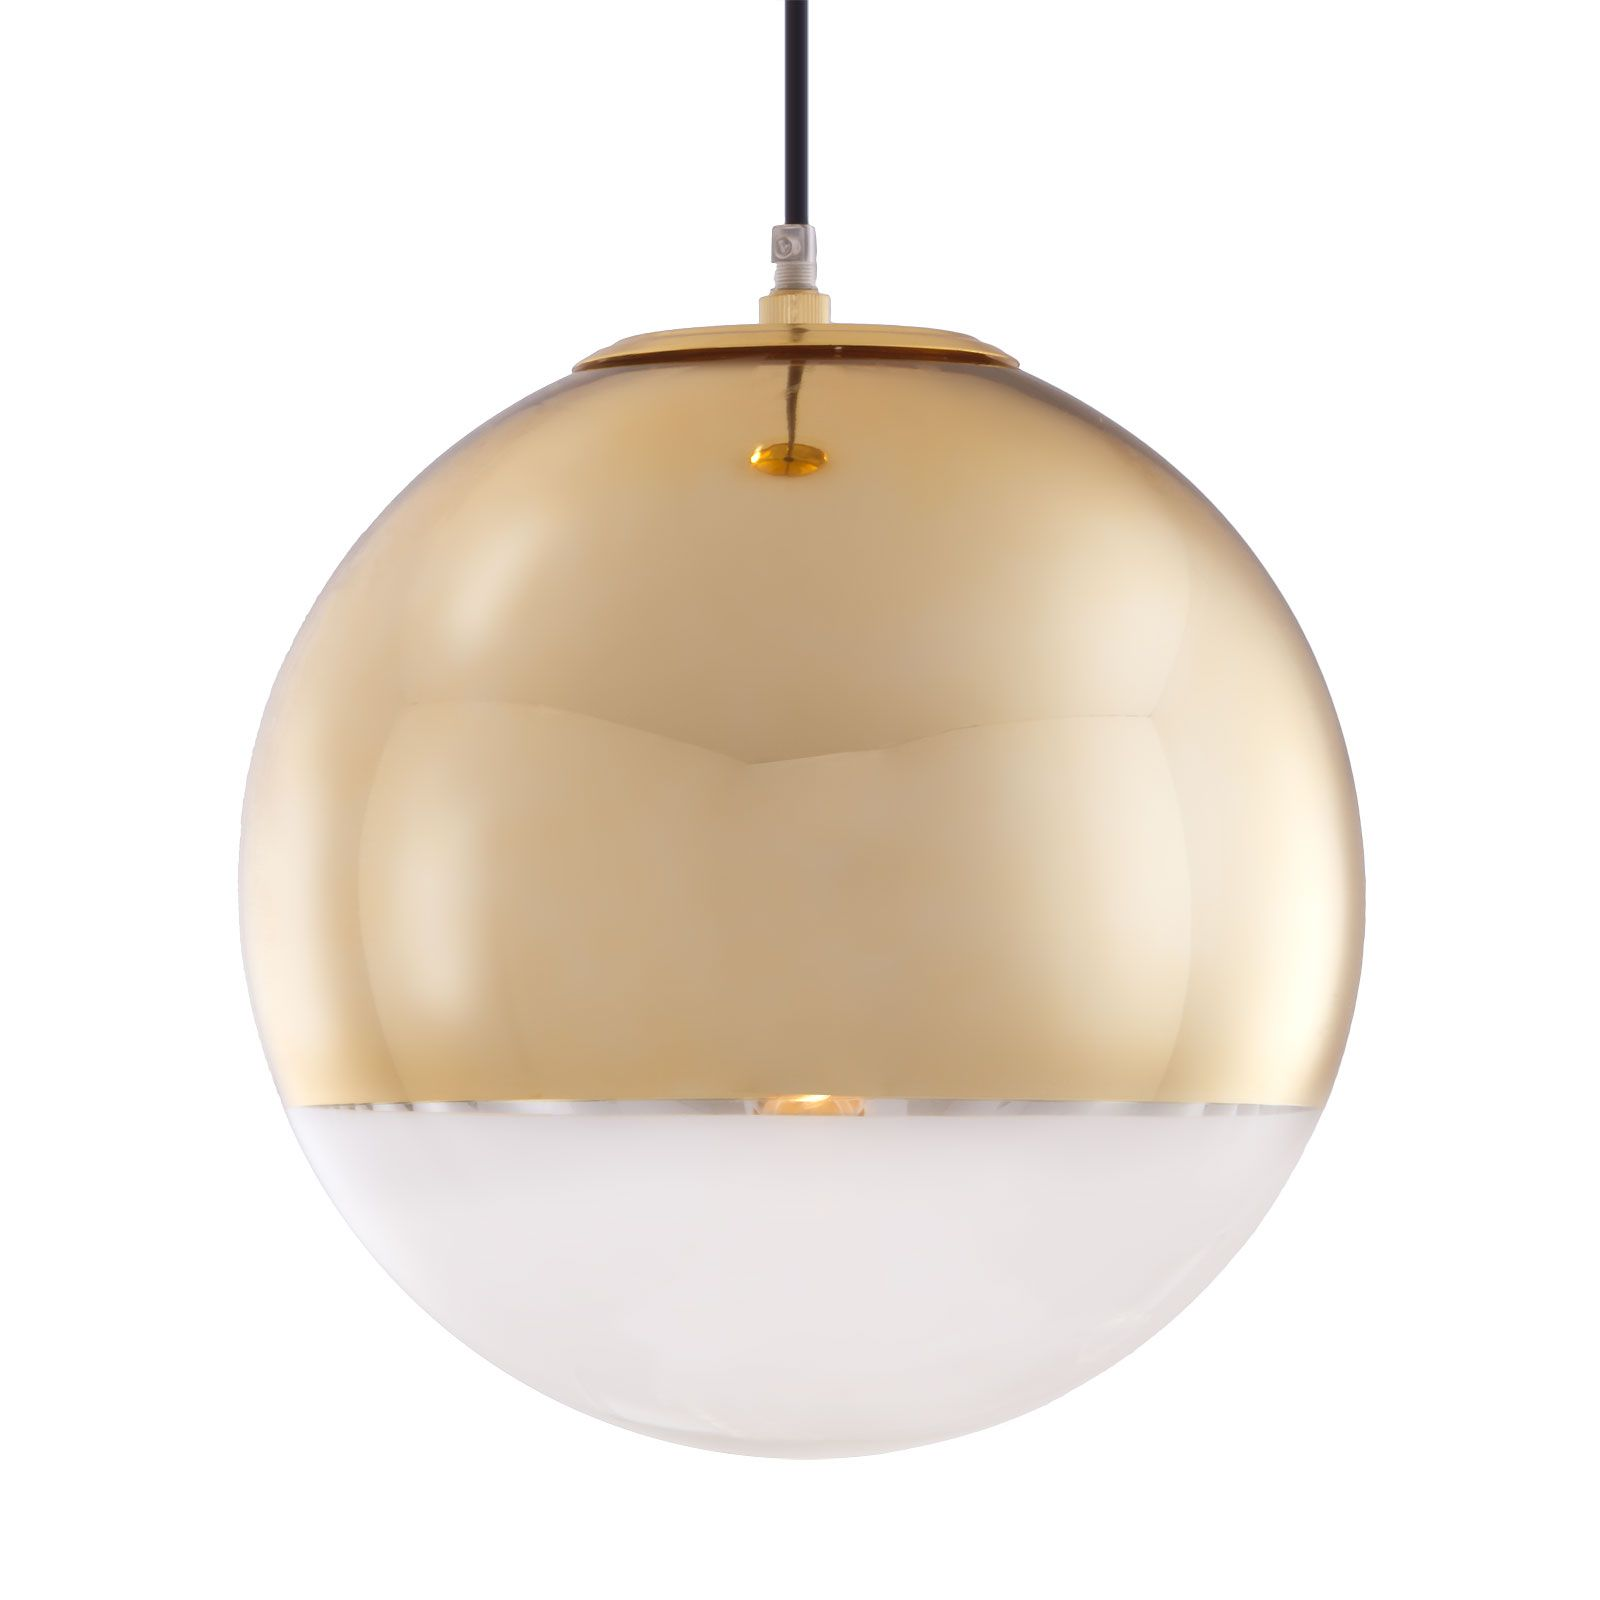 combination modern pendant light fixtures. clean, simple style combined with a clear spherical form, this chrome pendant lamp speaks combination modern light fixtures h